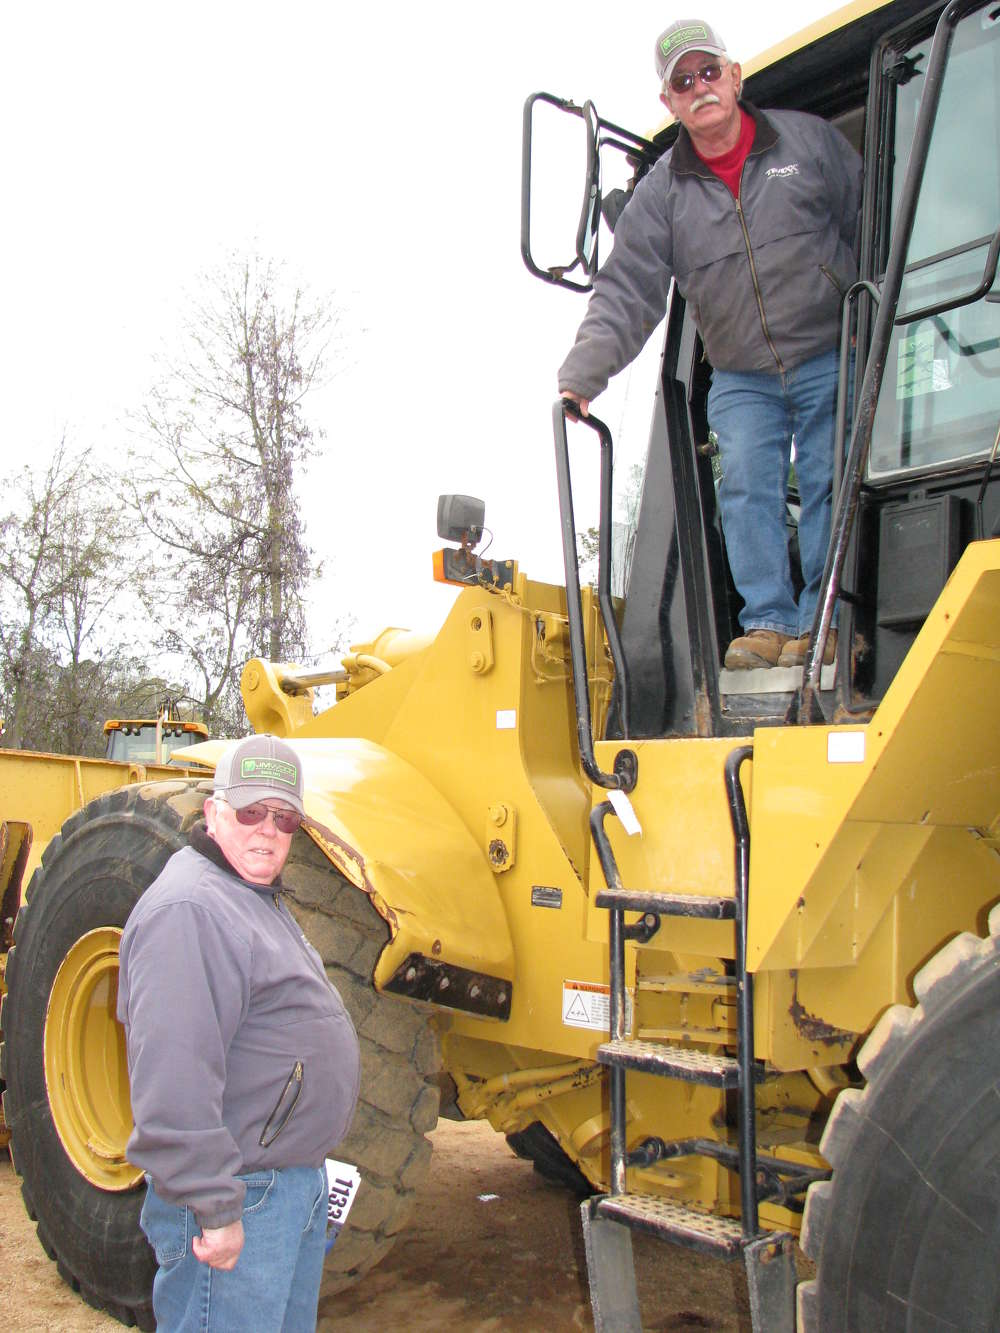 Ed Hallmark (L) and Jerry McLemore of TRAXX Parts & Equipment, Jasper, Ala., climb up on some wheel loaders